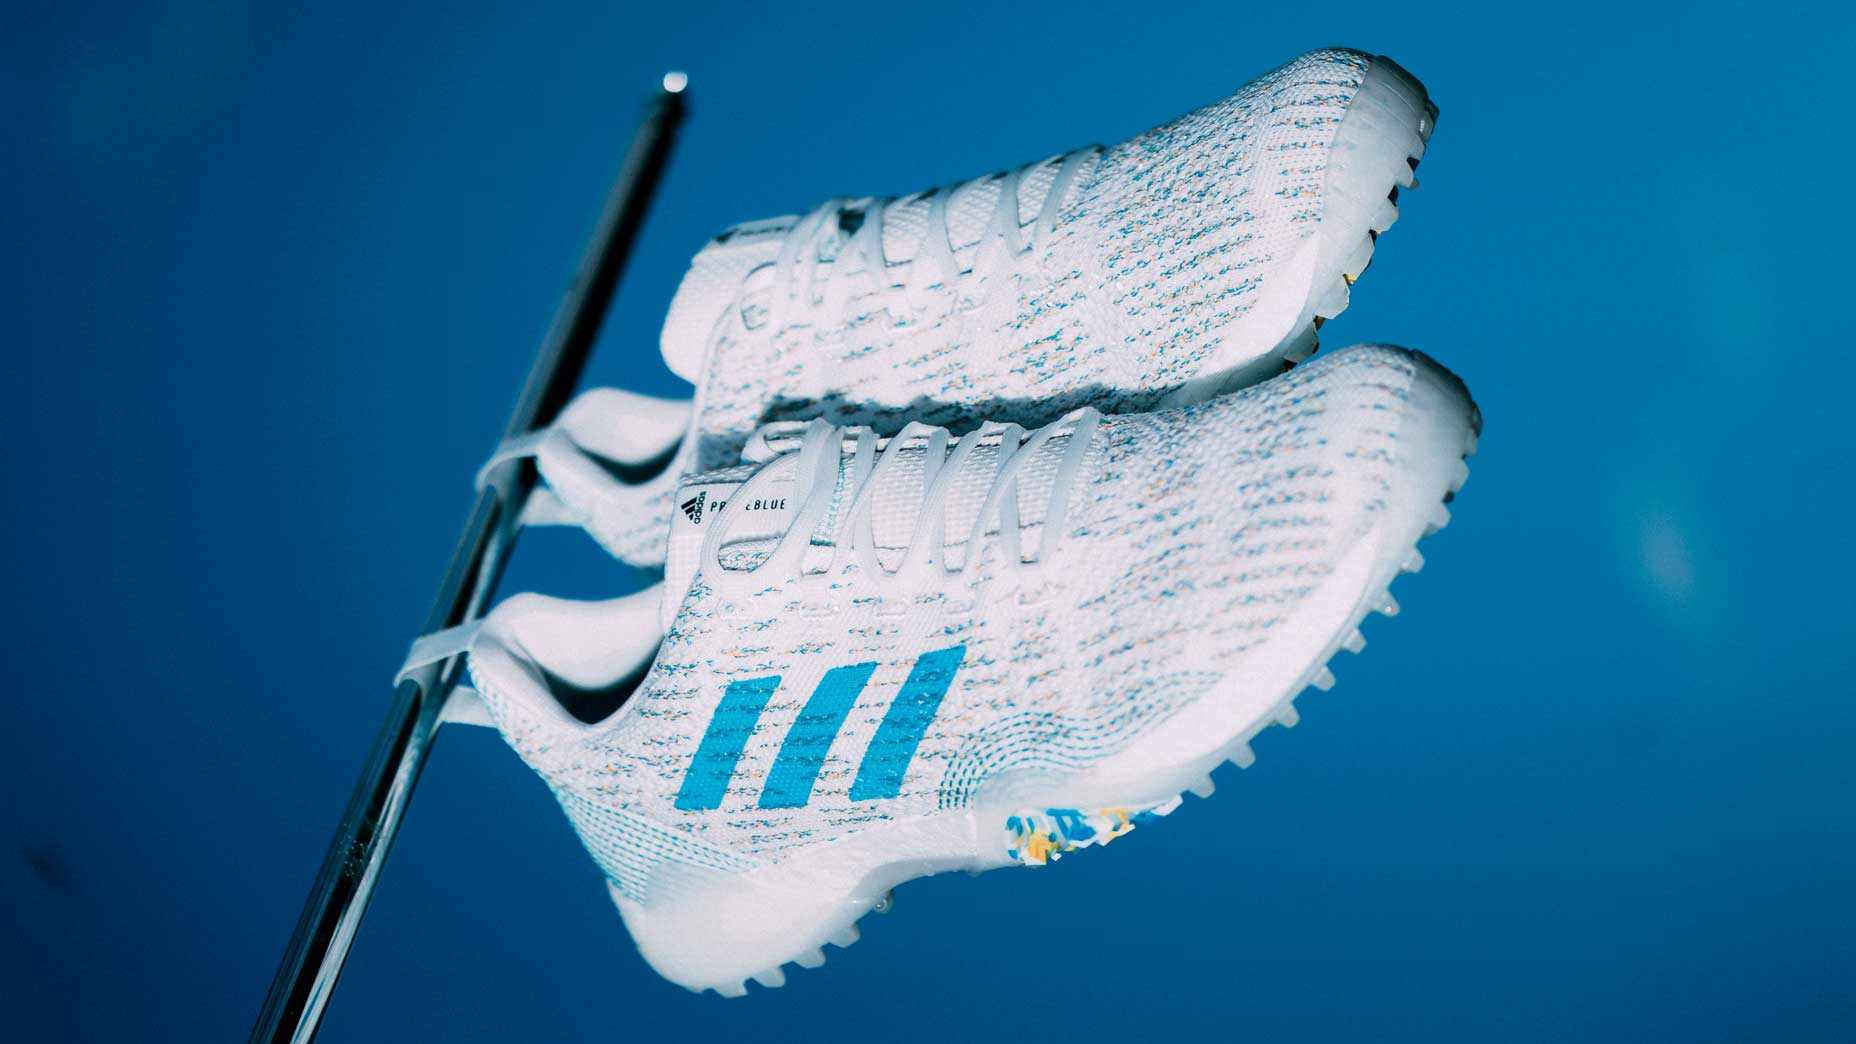 Adidas CodeChaos PrimeBlue golf shoes.